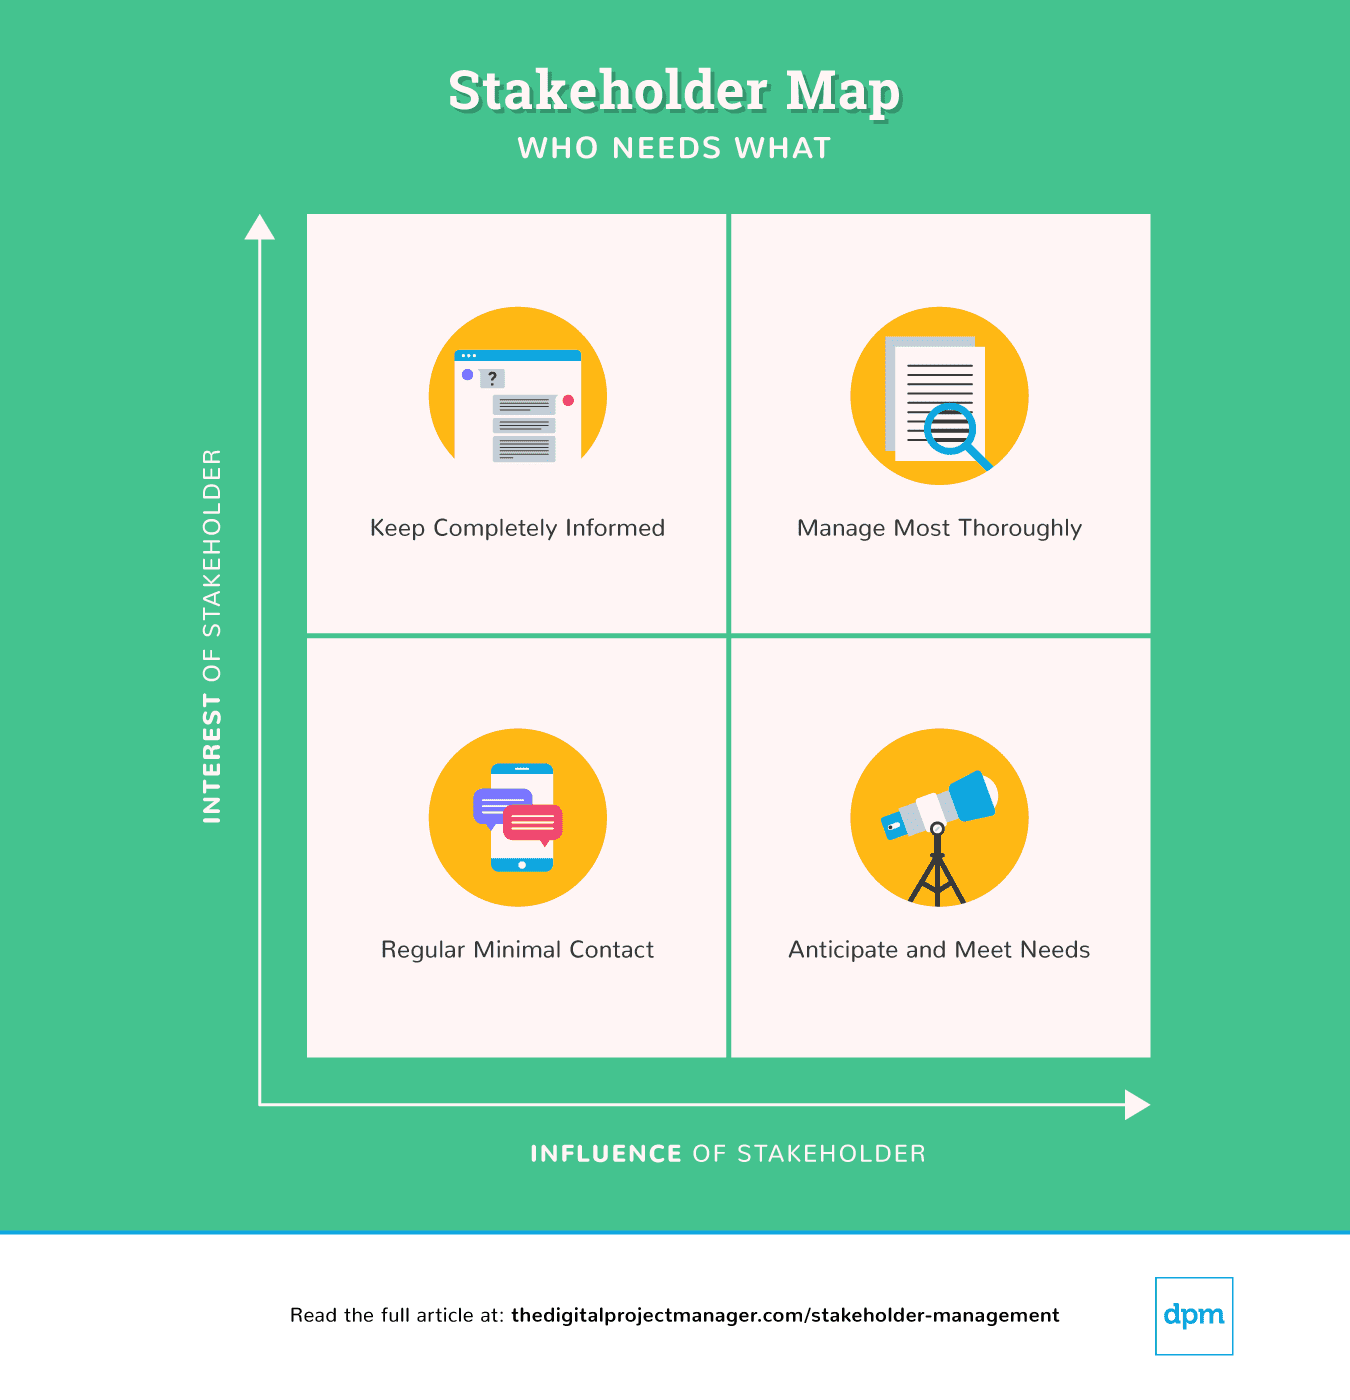 Stakeholder management map infographic